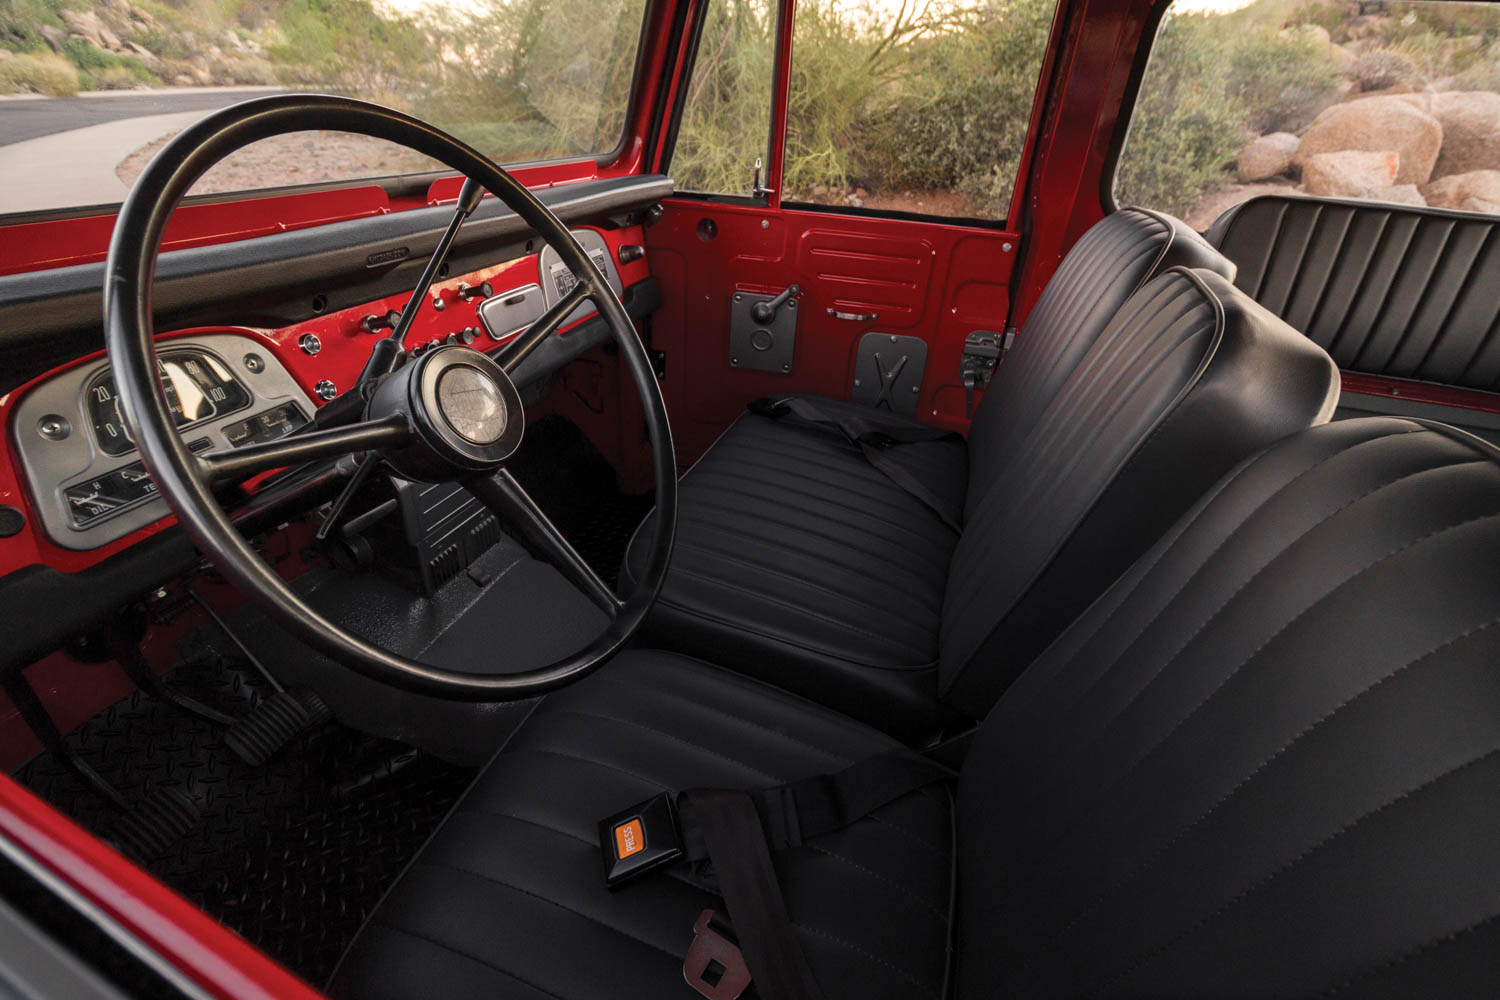 1970 Toyota Land Cruiser FJ40 interior